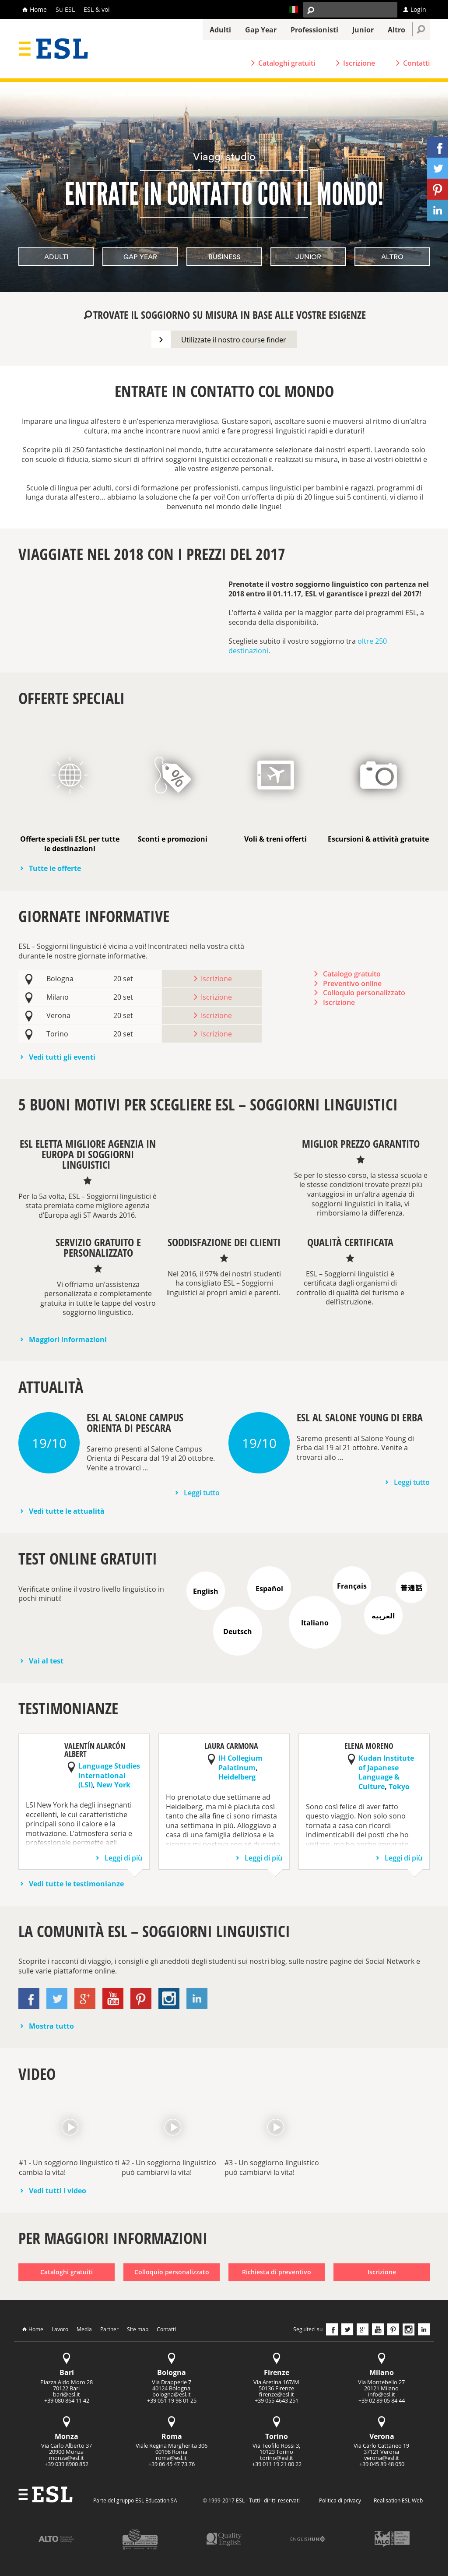 Esl - Soggiorni Linguistici Competitors, Revenue and Employees ...